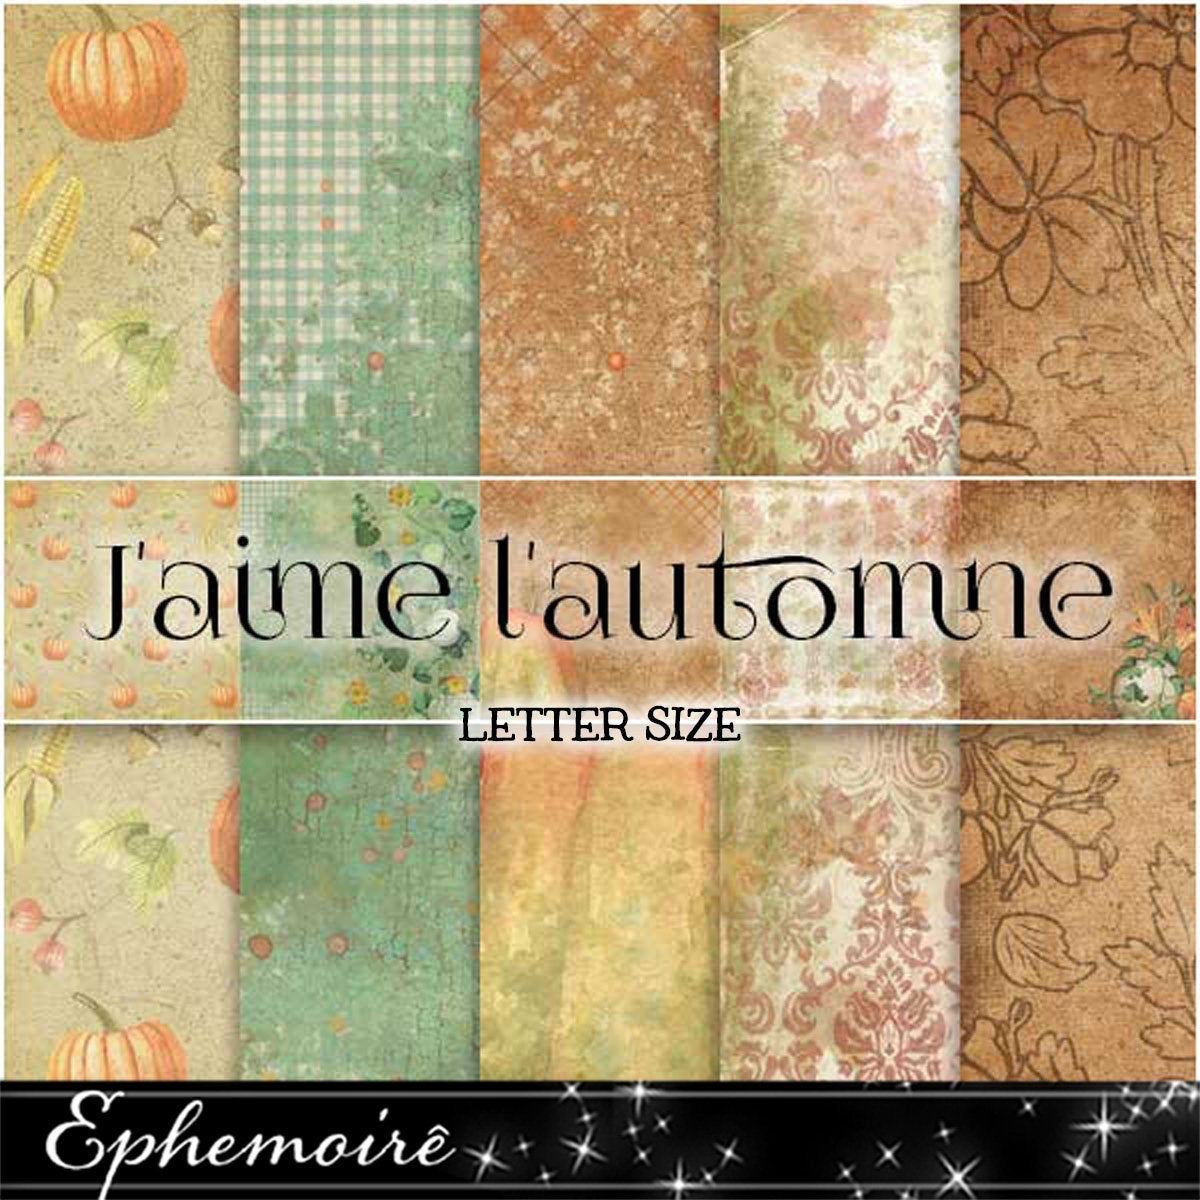 J'aime L'automne Autumn Fall Background - Printable Papers - Autumn Prints - Letter Size - Fall Background Papers - Journal Scrapbook Papers #fallbackgrounds